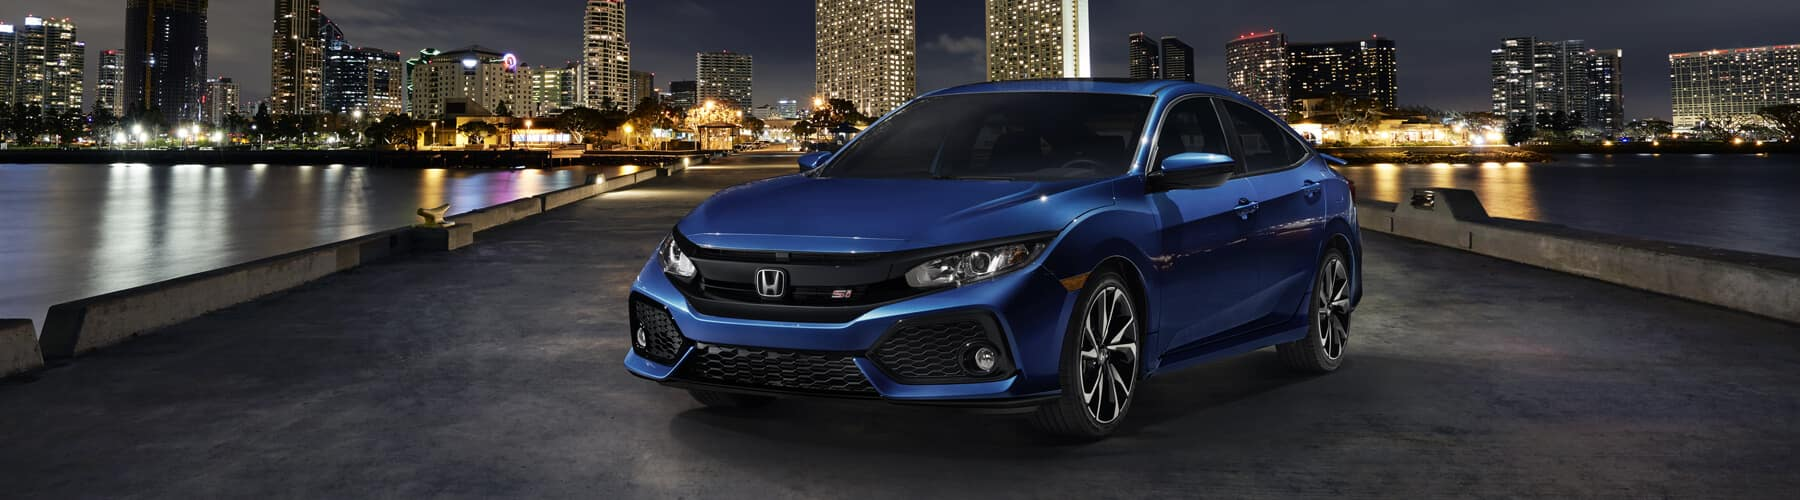 2018 Honda Civic Si Sedan Banner